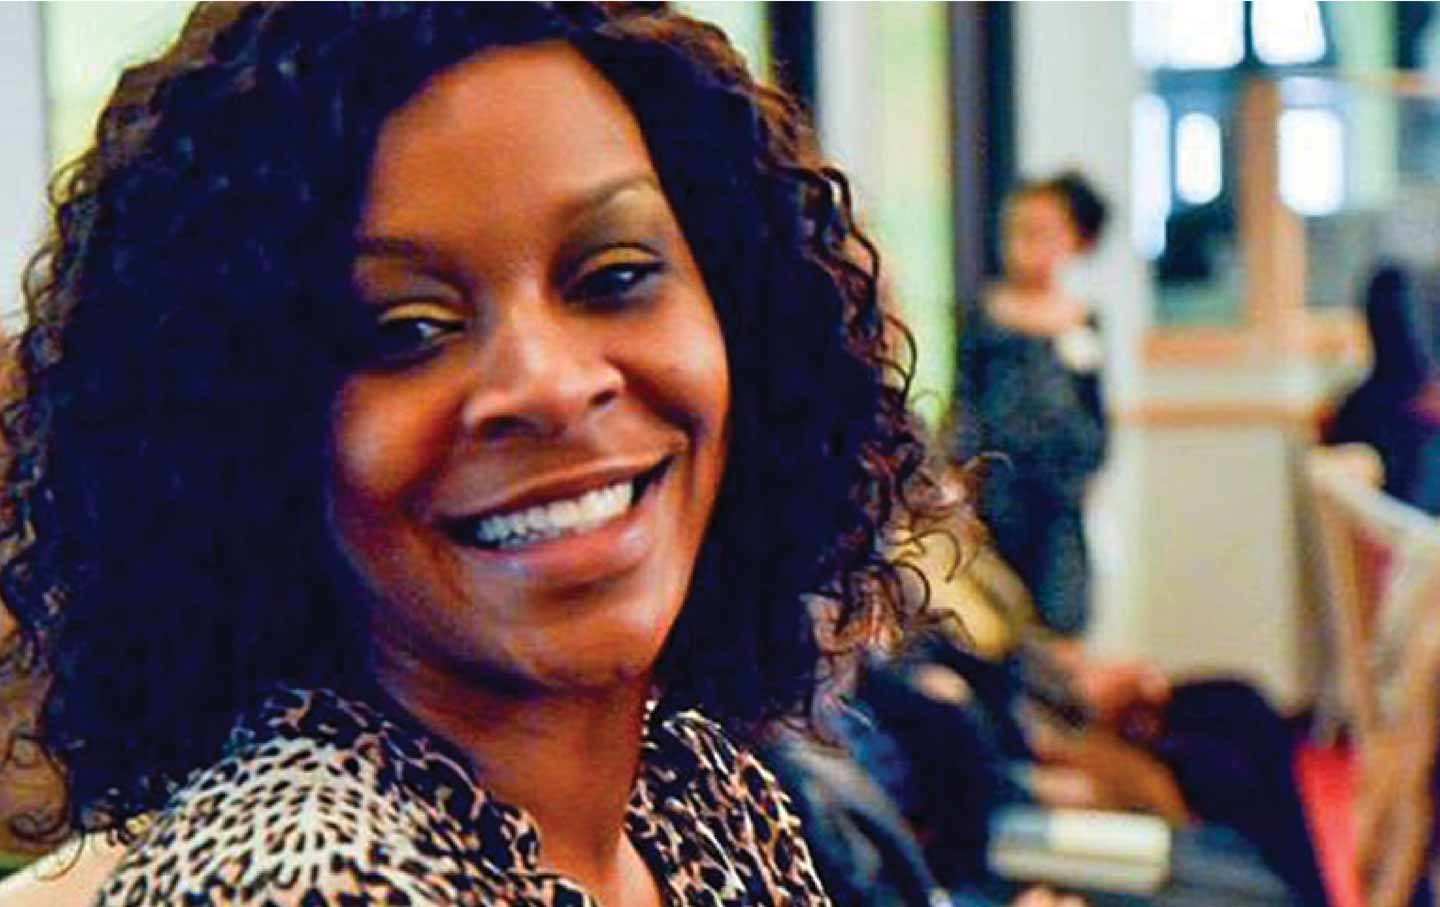 #SayHerName: Sandra Bland Documentary Coming To HBO